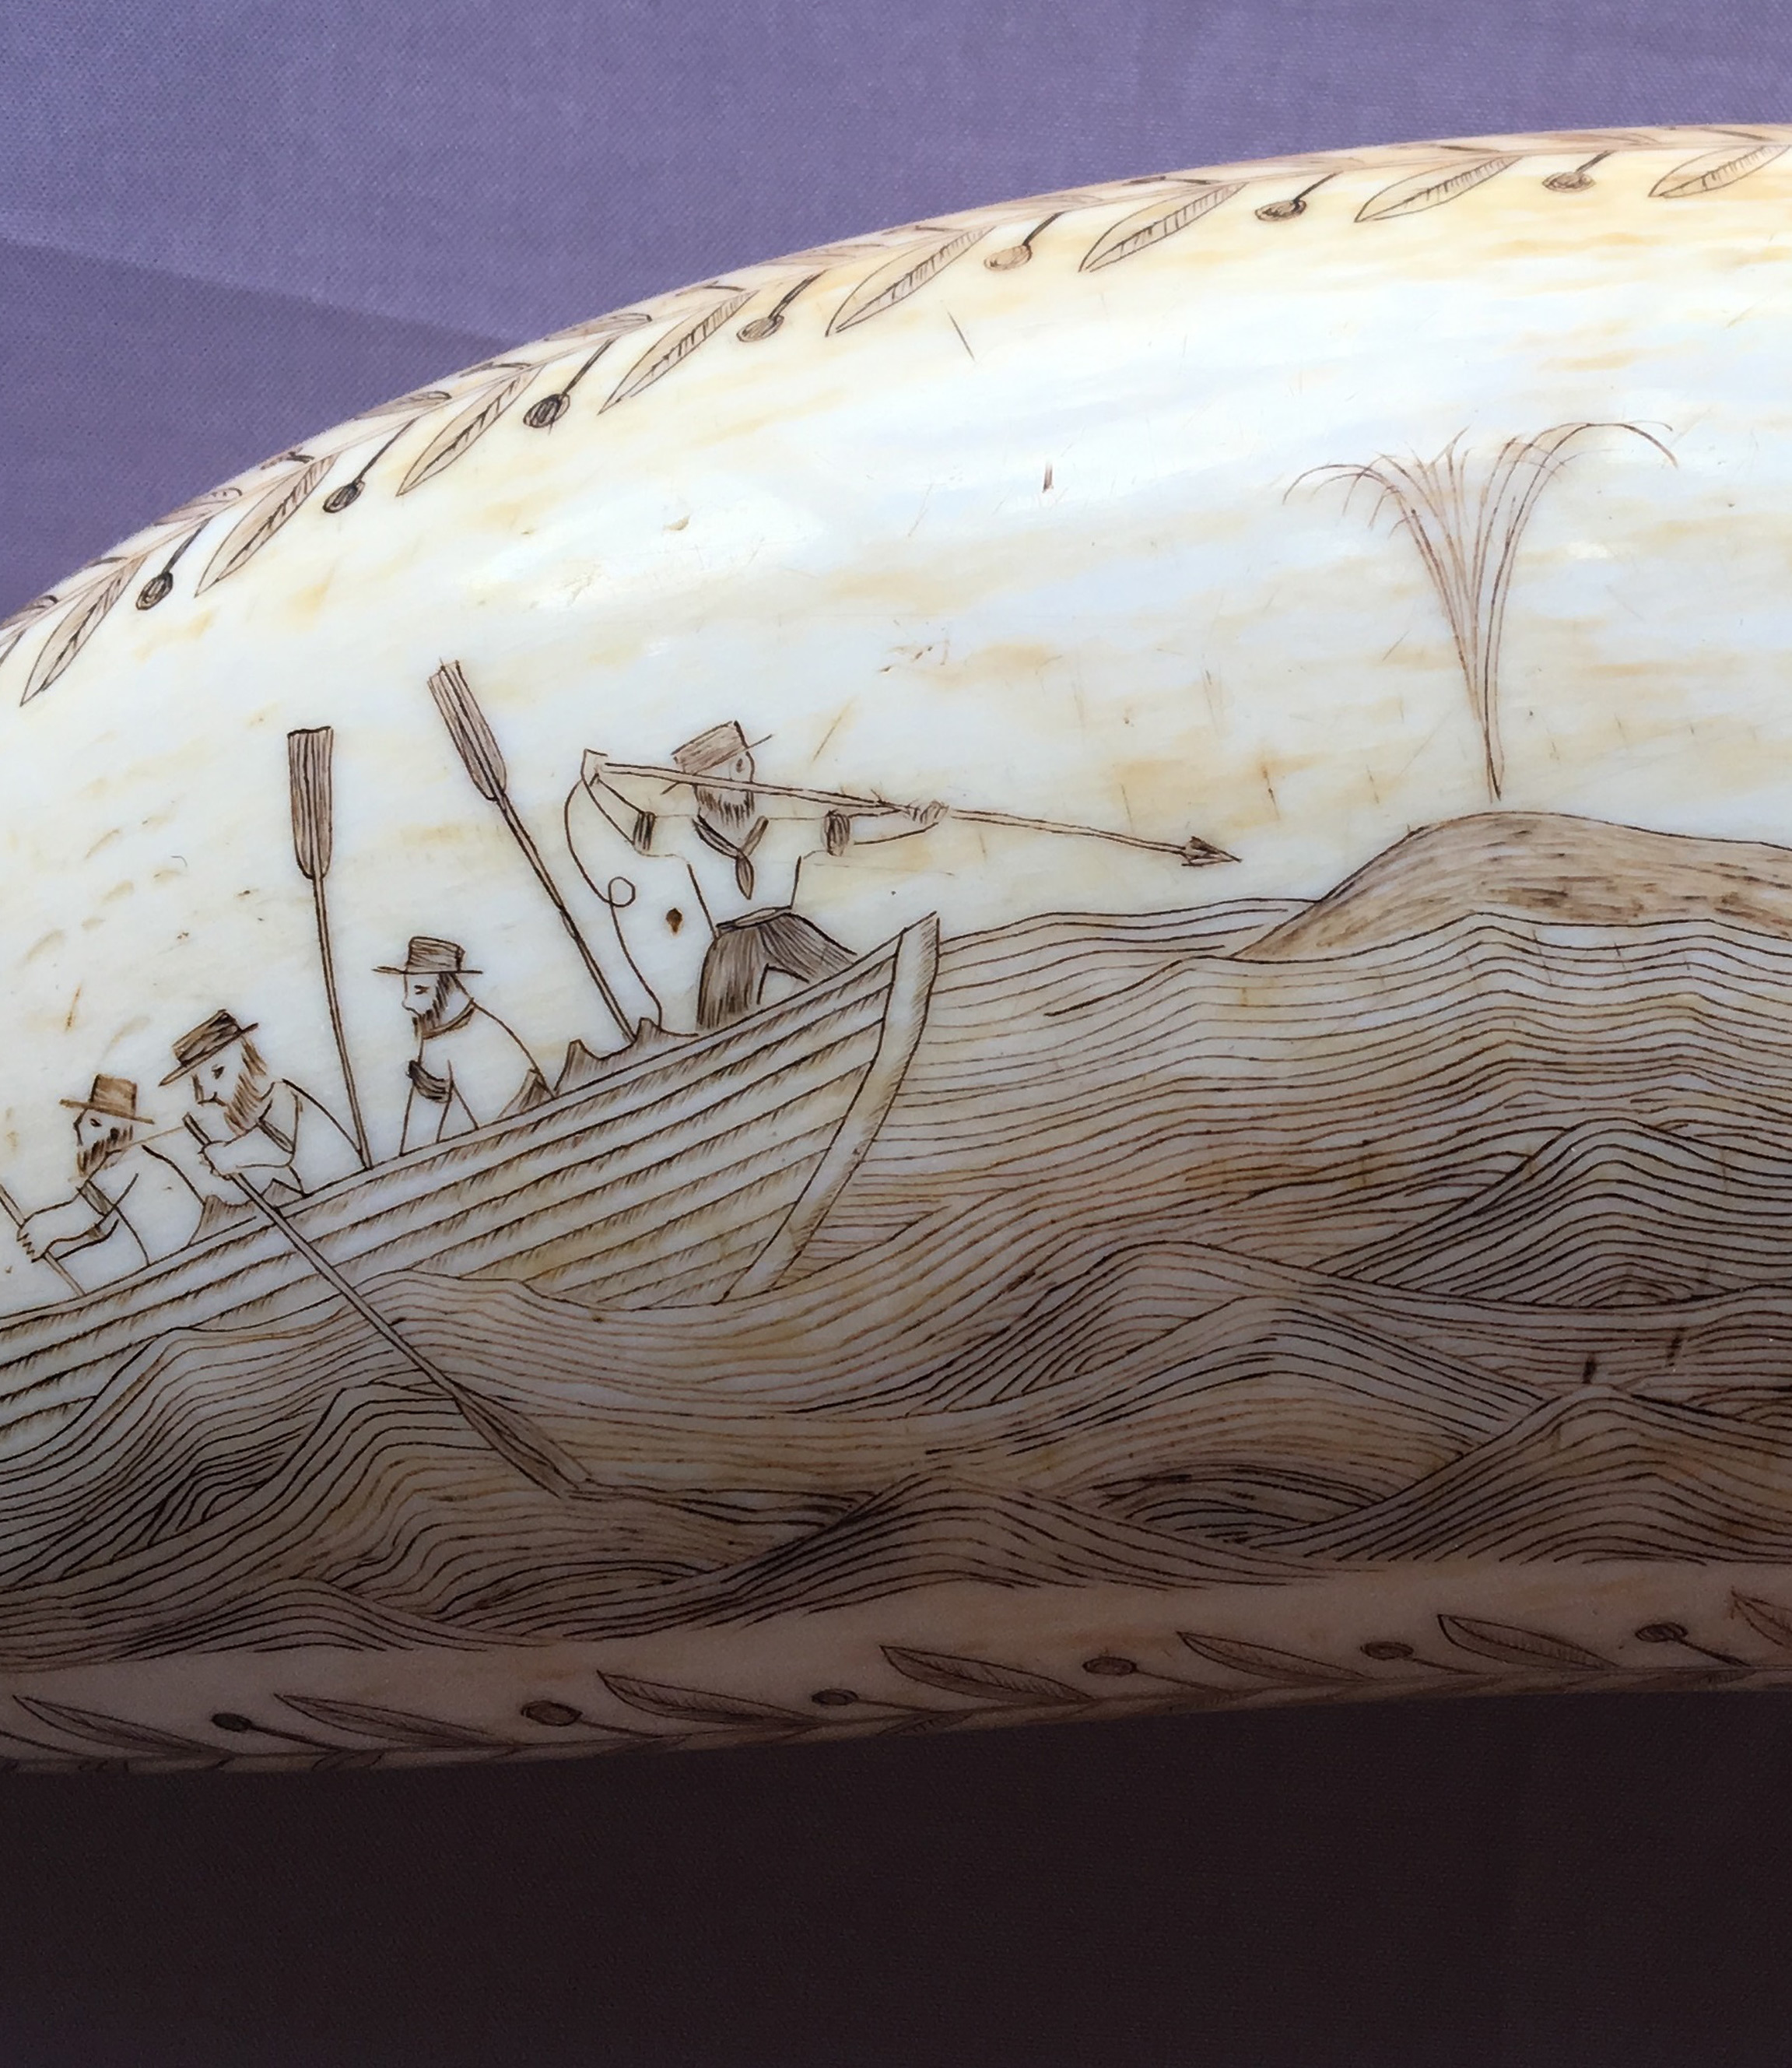 Scrimshaw - Narryna's scrimshaw collection reflects the importance of whaling to Tasmania's 19th century economy.